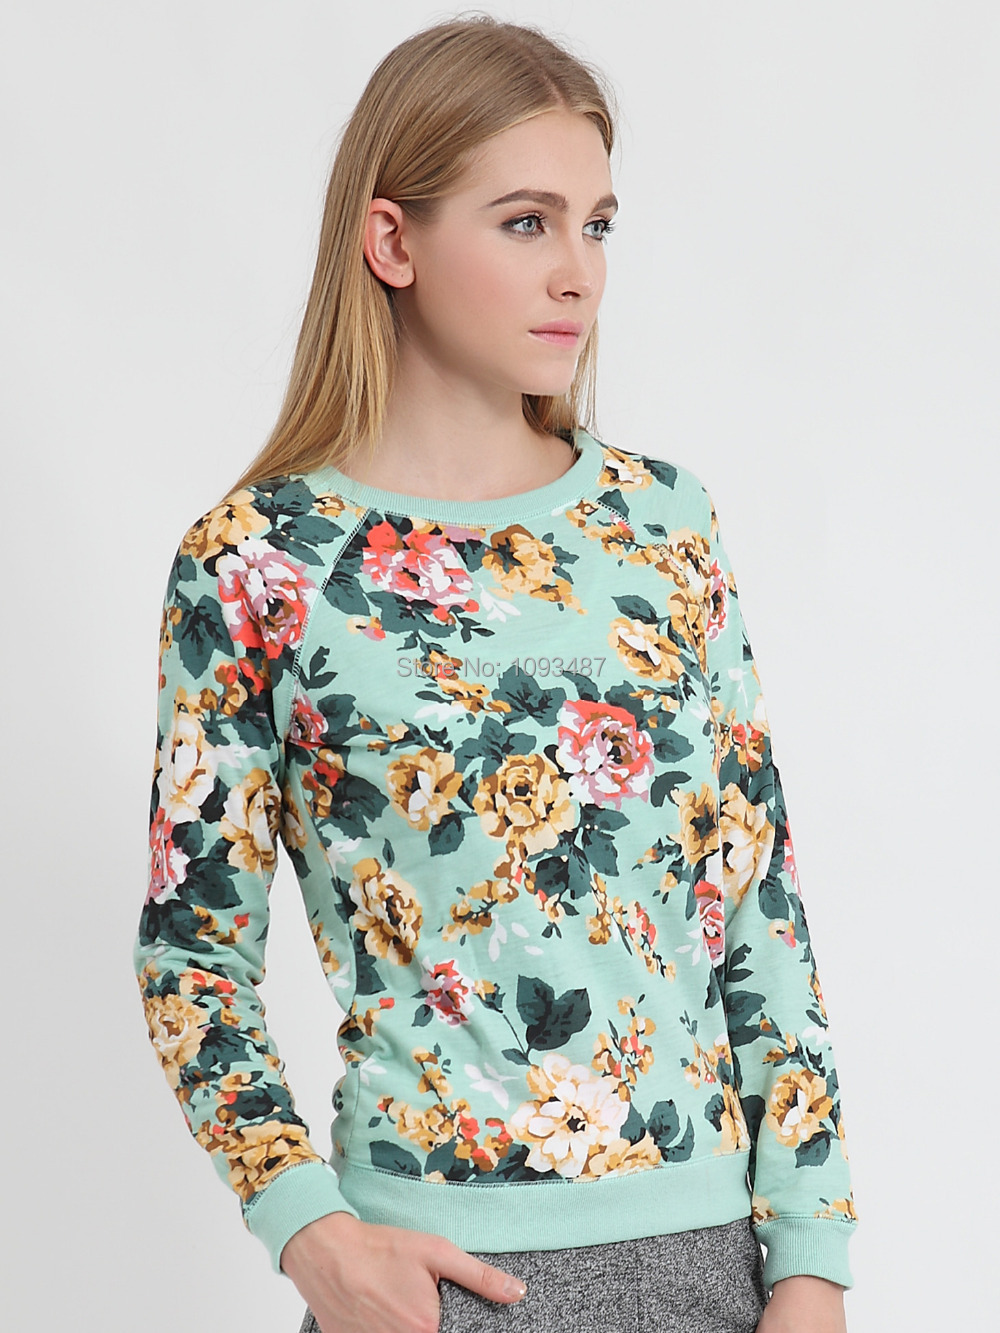 Find great deals on eBay for womens print sweatshirts. Shop with confidence. Skip to main content. eBay: Shop by category. New Listing New Fortnite 3D Print Sweatshirts Women/Men Hoodies Sweatshirt Hoodies Men. Brand New. $ More colors. Buy It Now. Free Shipping.